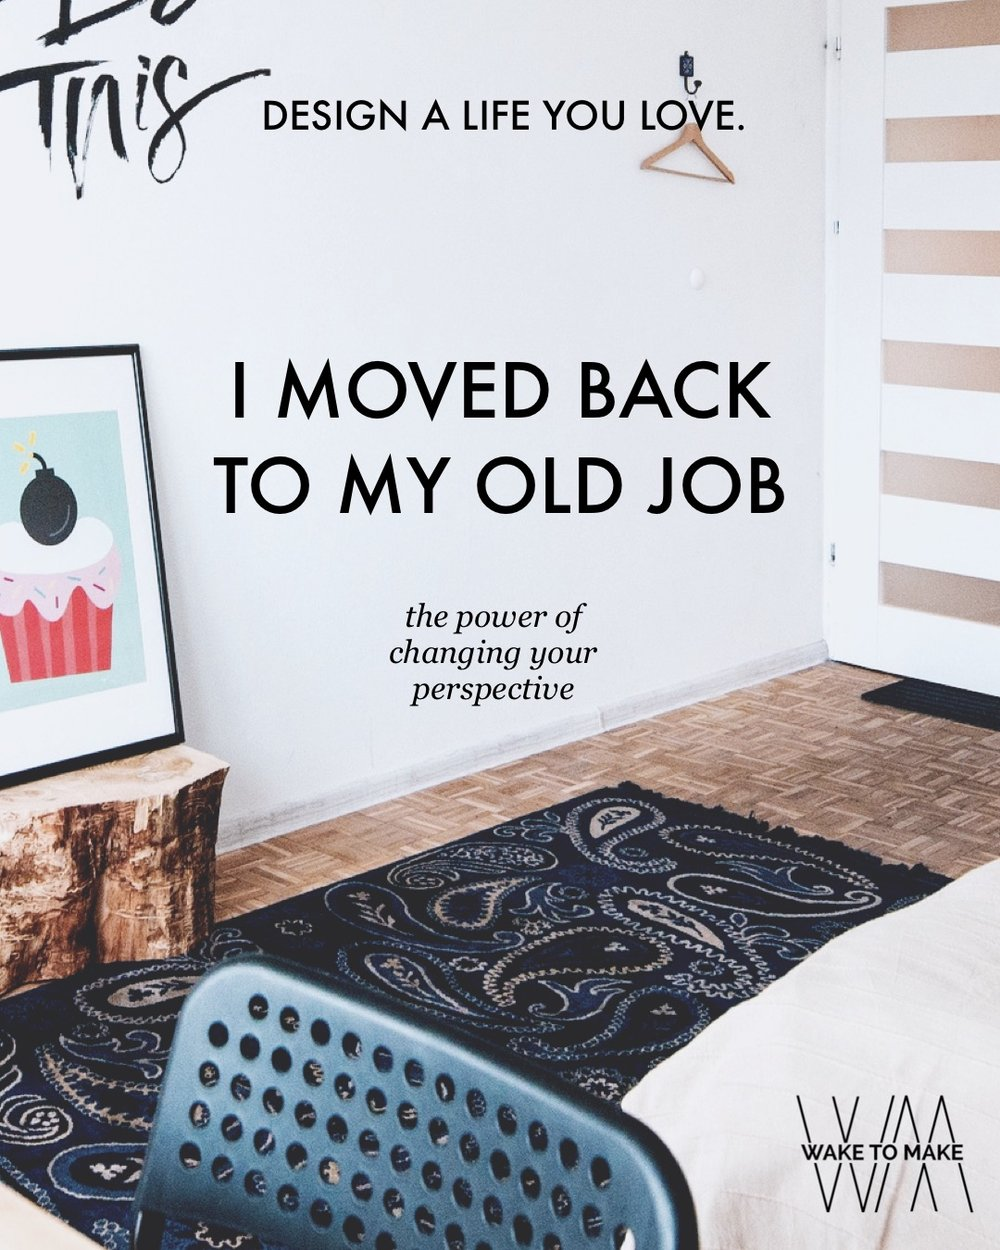 Episode 20 - I Moved Back To My Old Job. The power of changing your perspective.